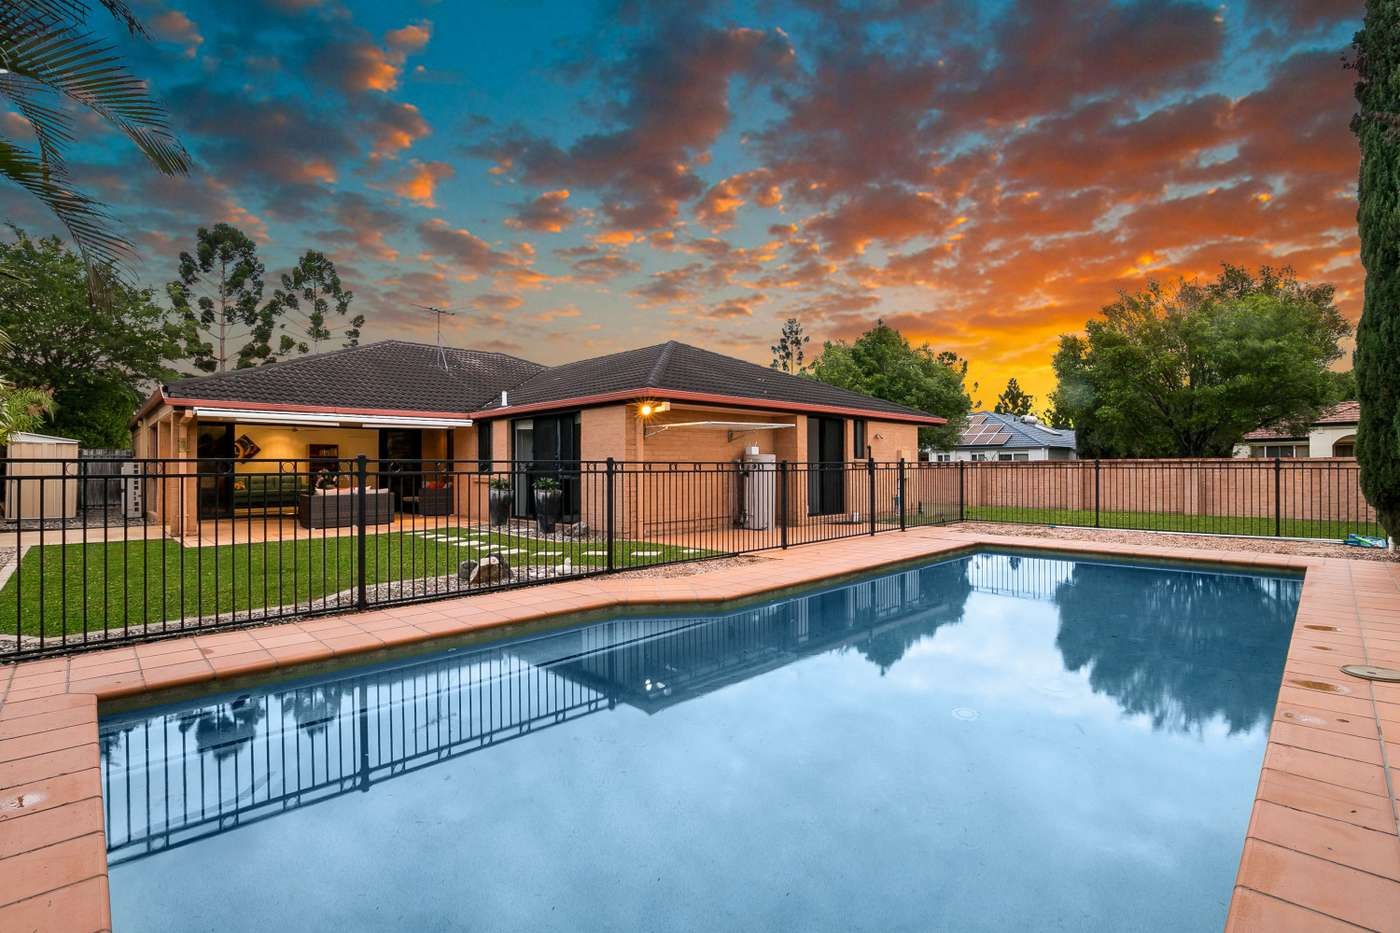 Main view of Homely house listing, 36 Thomas Macleod Ave, Sinnamon Park, QLD 4073